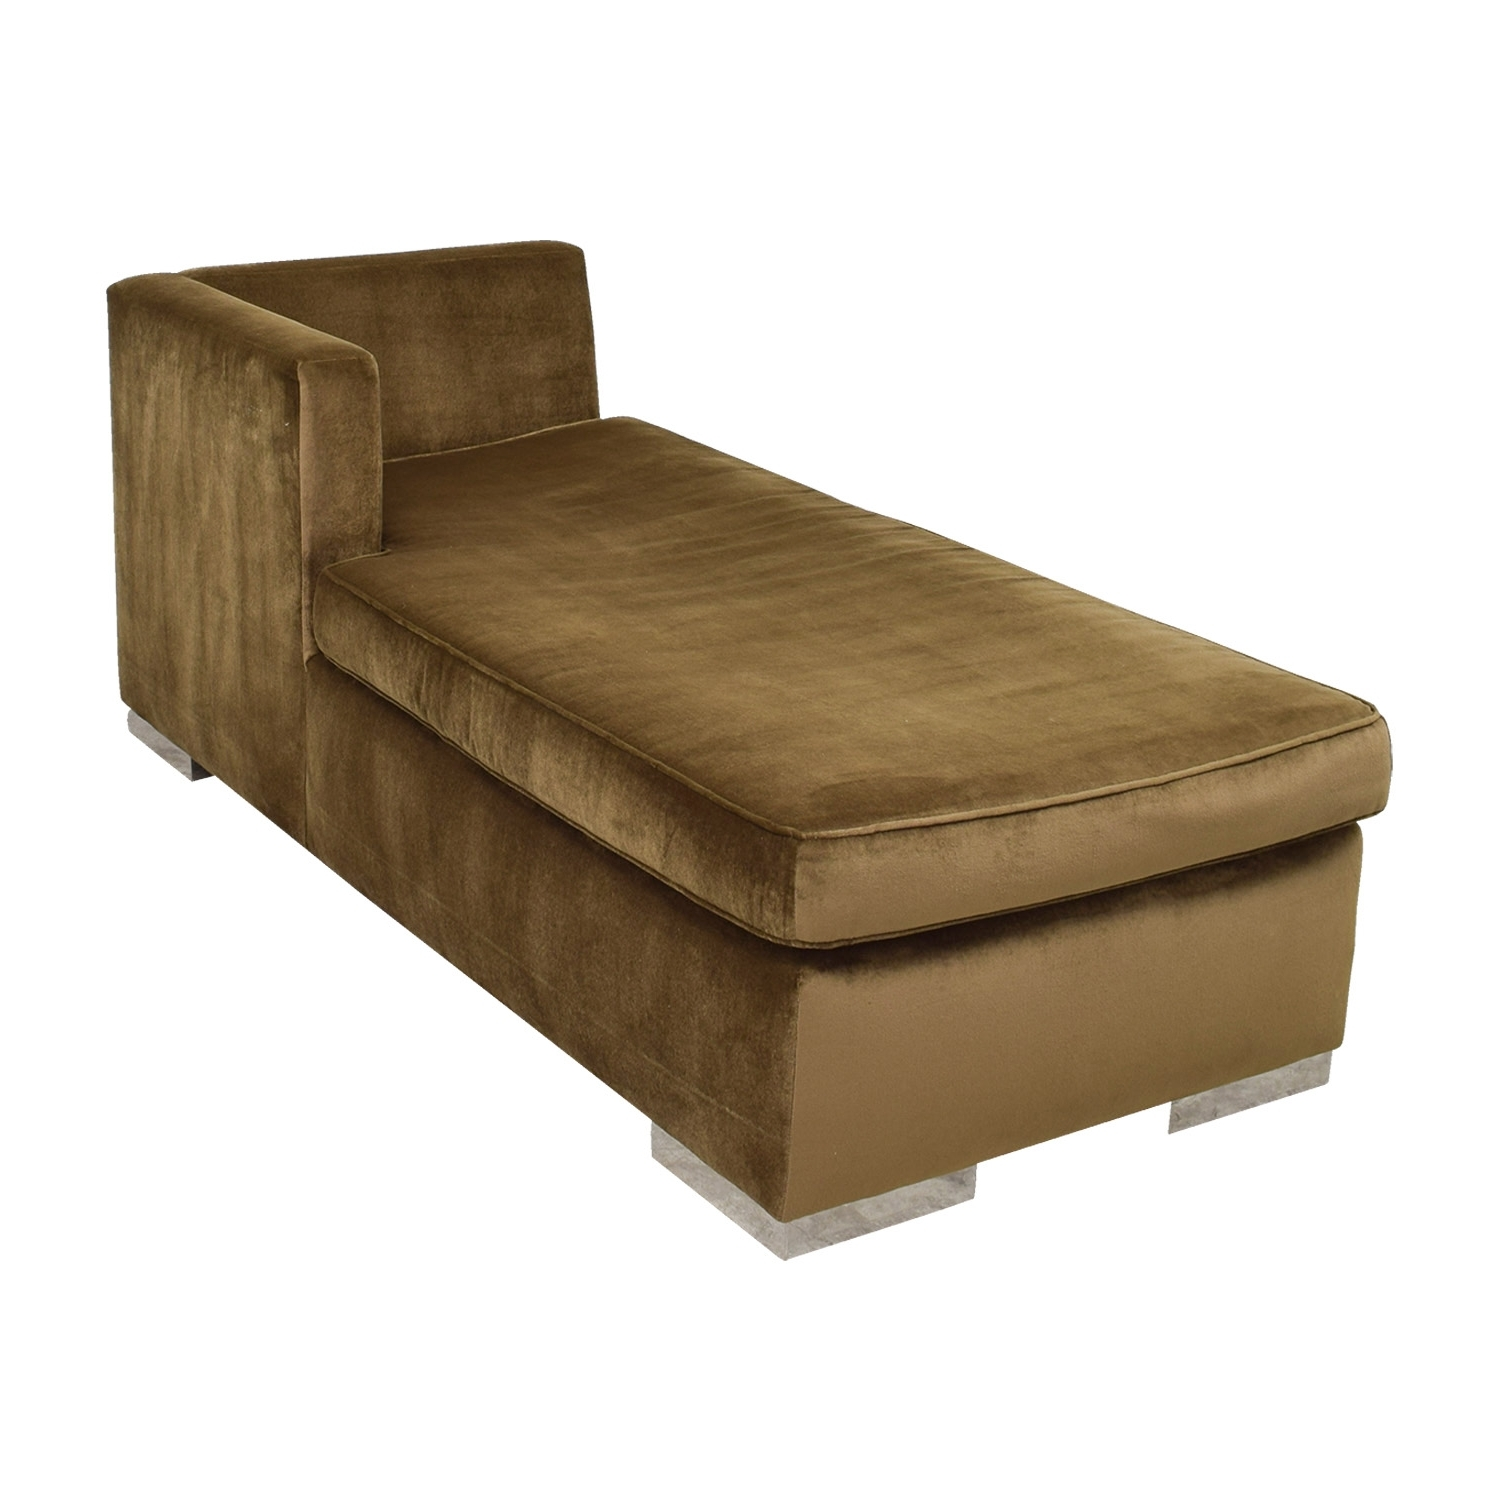 [%85% Off – Leija Designs Leija Designs Brown Mohair Chaise Lounger Intended For 2017 Brown Chaises|Brown Chaises In Well Known 85% Off – Leija Designs Leija Designs Brown Mohair Chaise Lounger|Newest Brown Chaises Intended For 85% Off – Leija Designs Leija Designs Brown Mohair Chaise Lounger|Preferred 85% Off – Leija Designs Leija Designs Brown Mohair Chaise Lounger Throughout Brown Chaises%] (View 10 of 15)